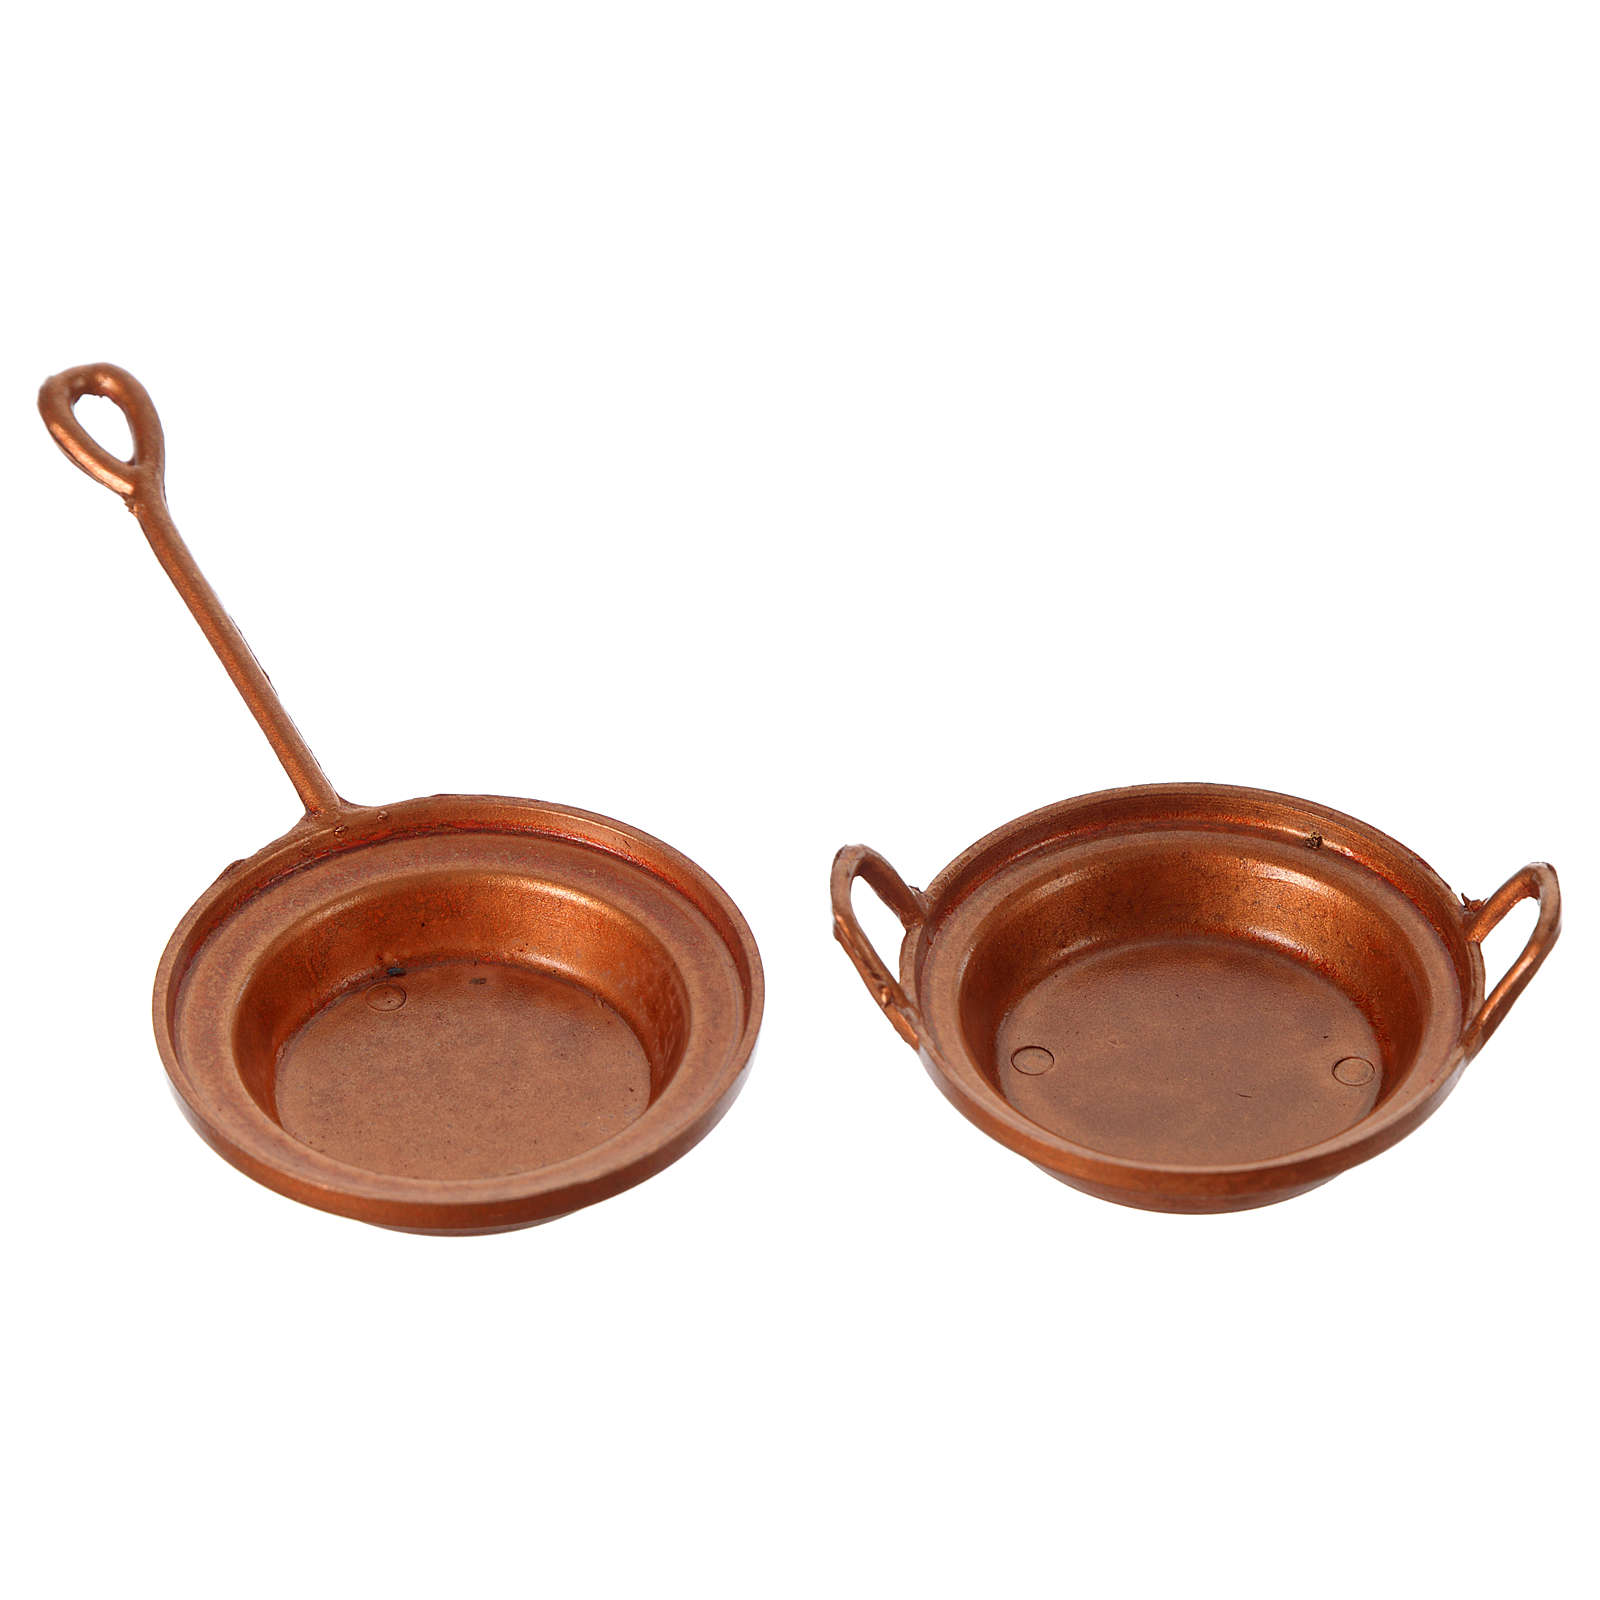 Nativity set accessory, set of 2 pans 4